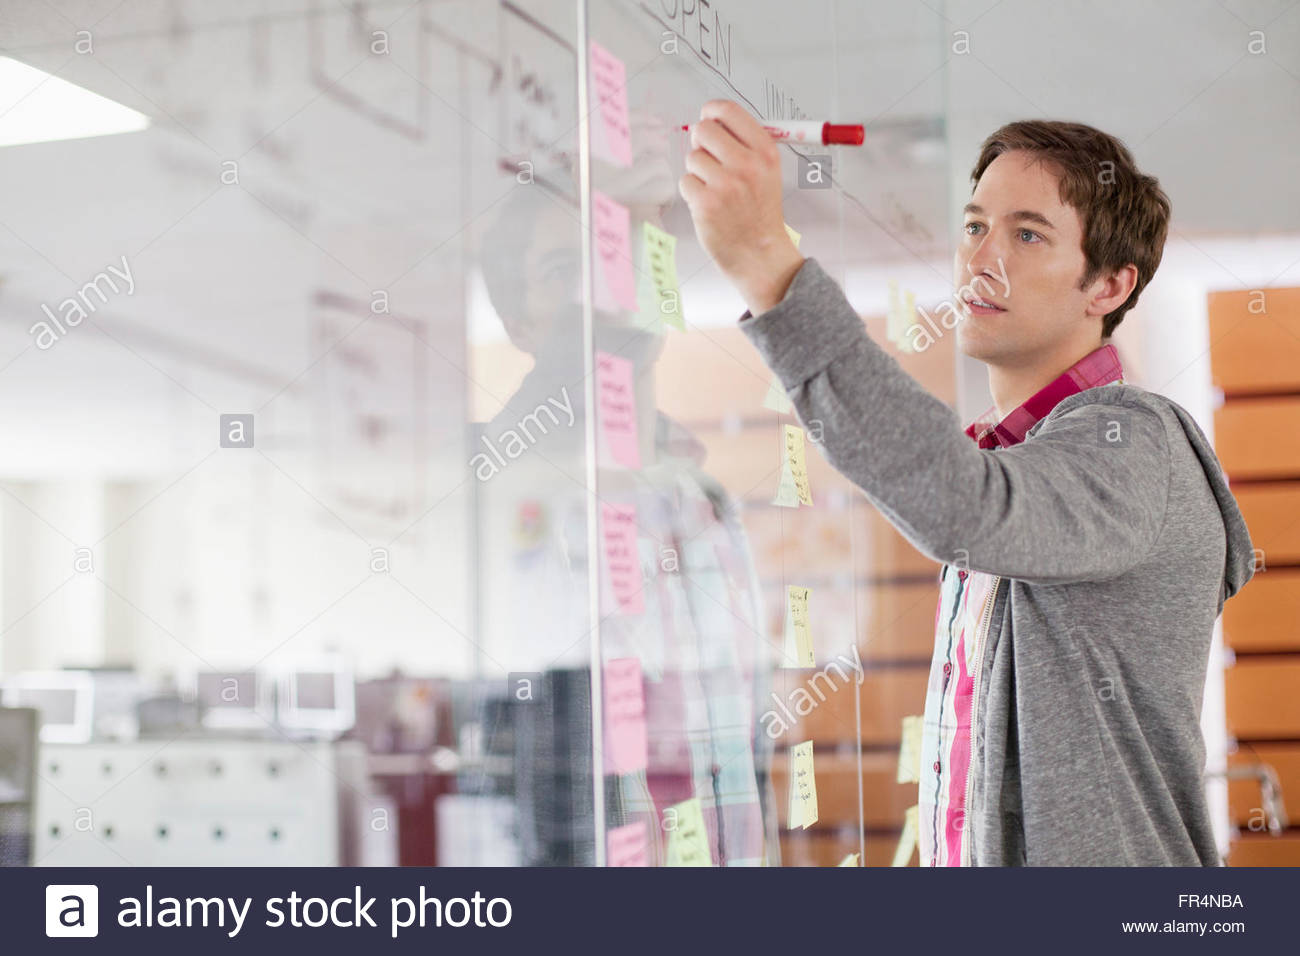 analyst drawing out strategy on glass wall - Stock Image